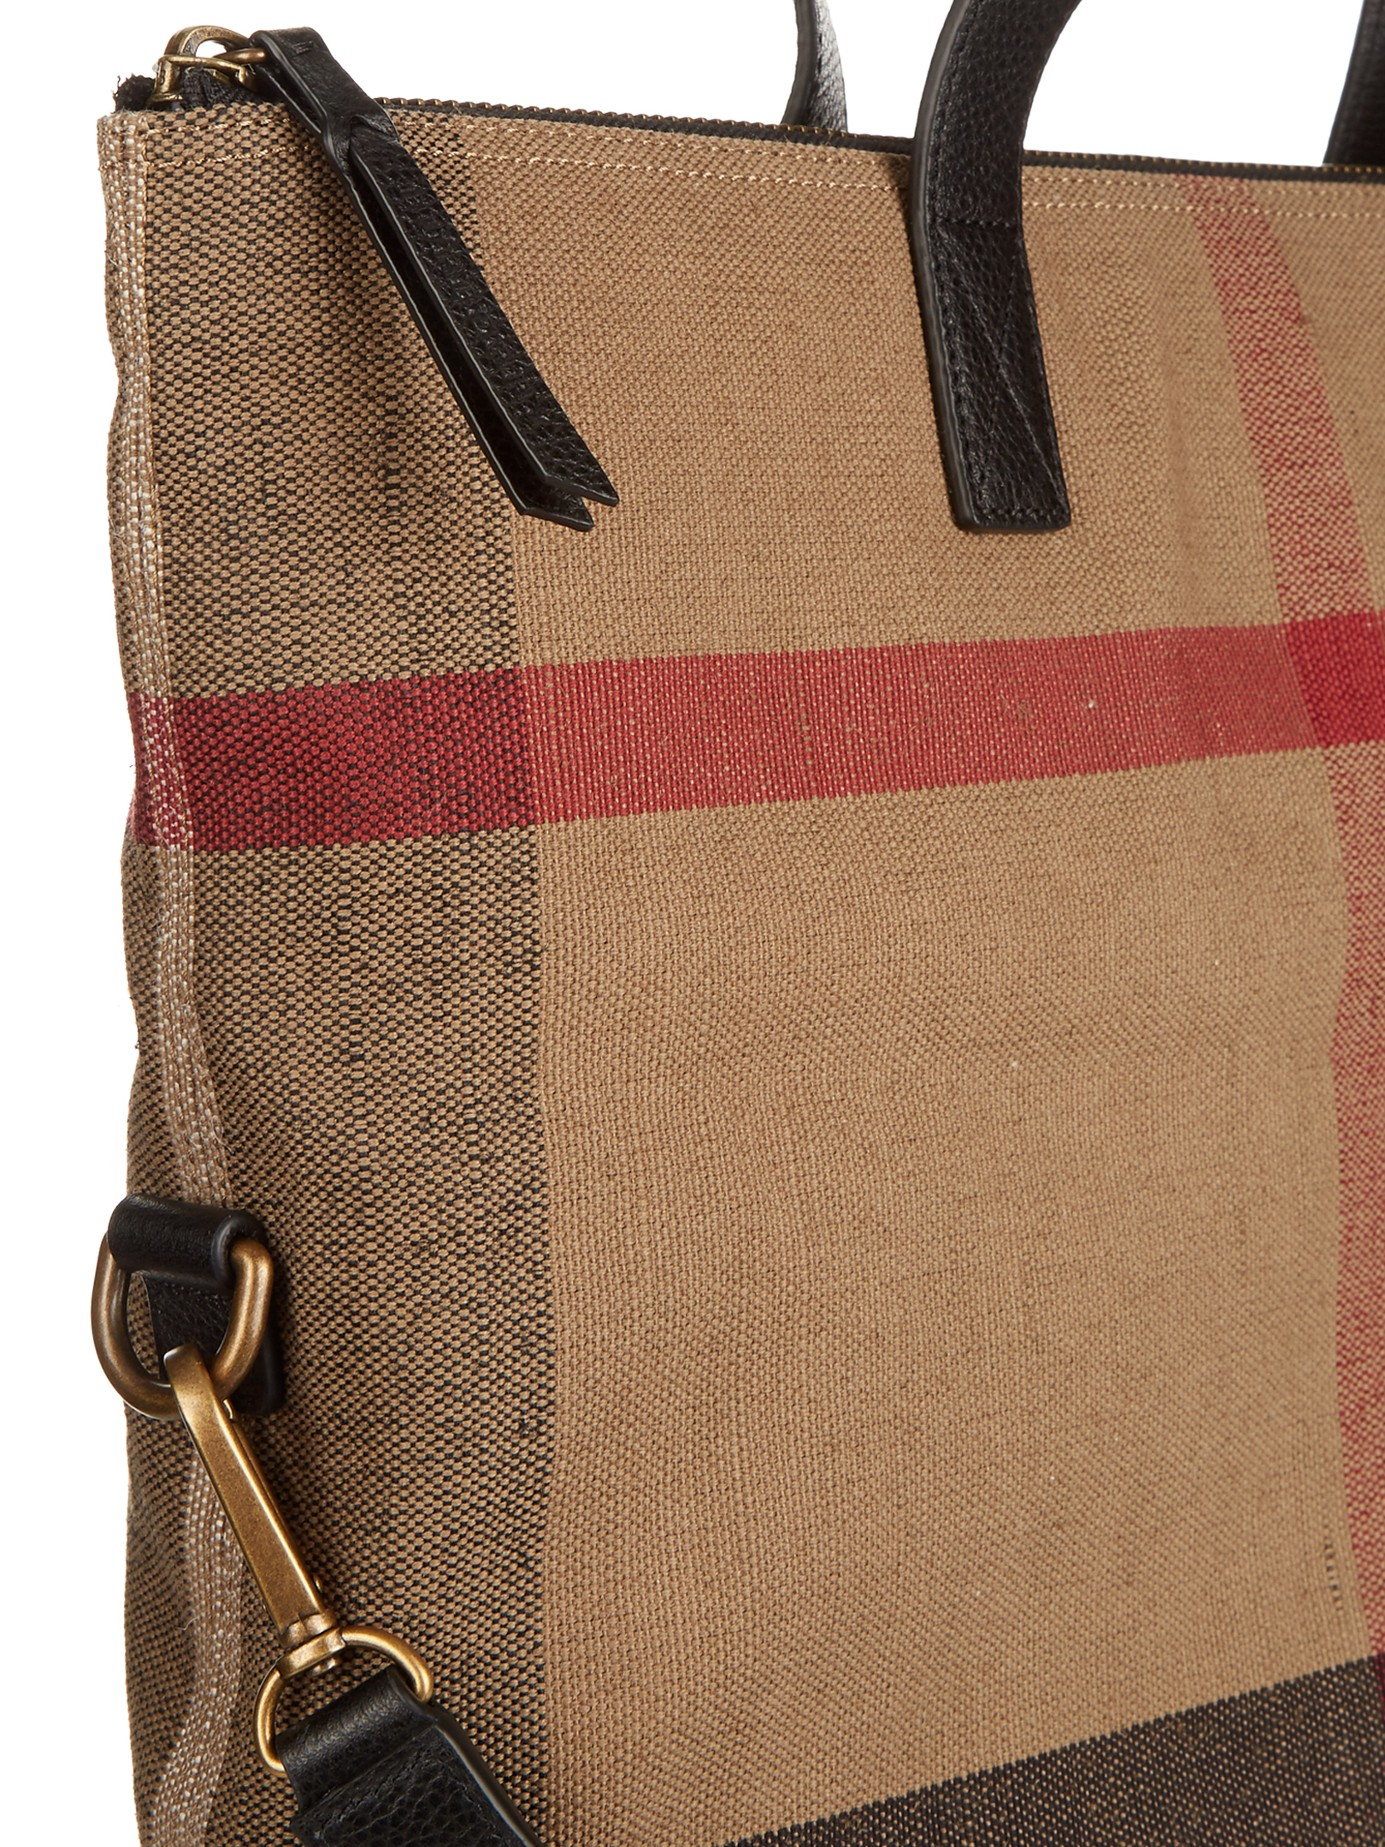 24df755d0 Burberry Armley Checked Canvas And Leather Tote in Brown for Men - Lyst